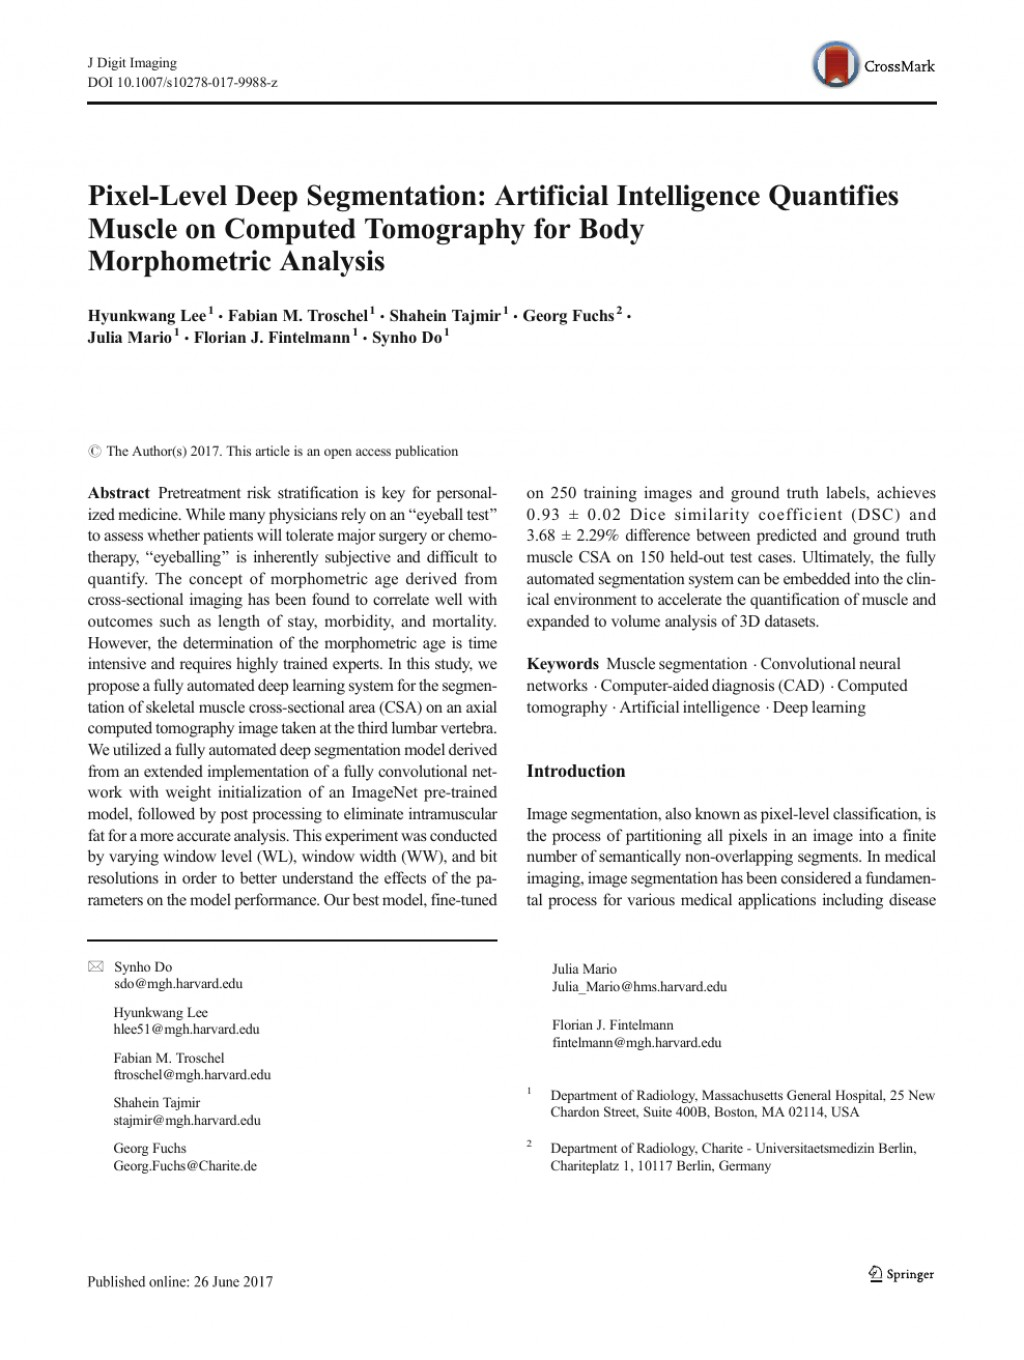 003 Researchs Artificial Intelligence Imposing Research Papers On In Marketing Ieee Algorithms Large